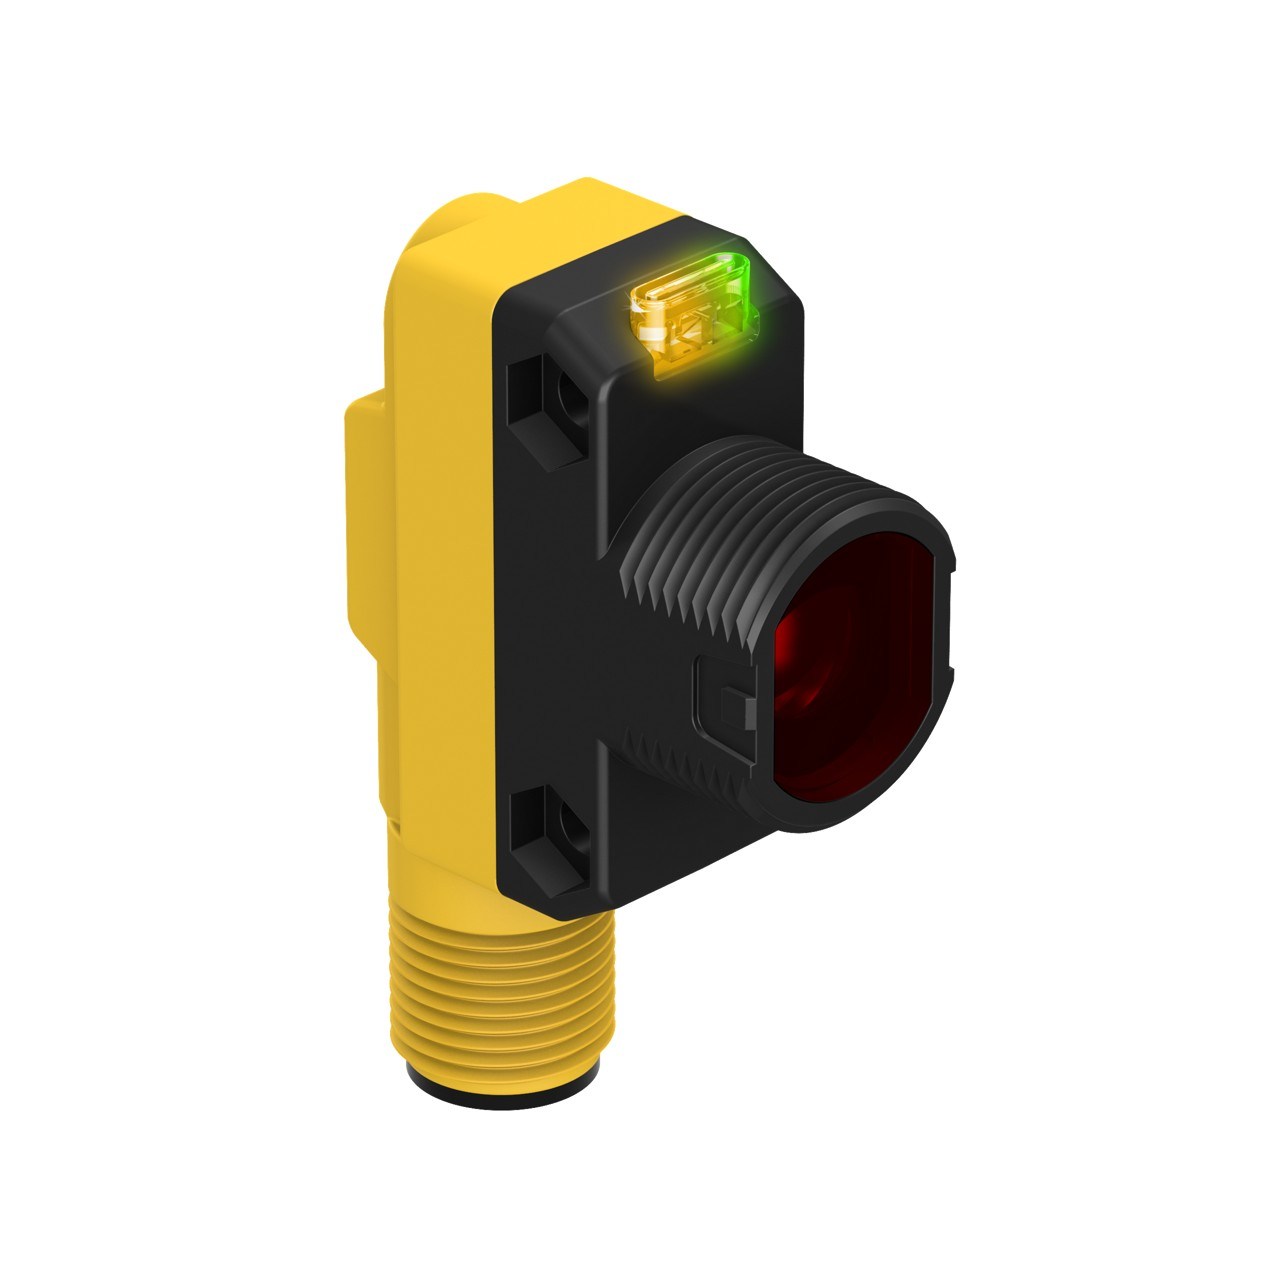 QS18 photoelectric sensor